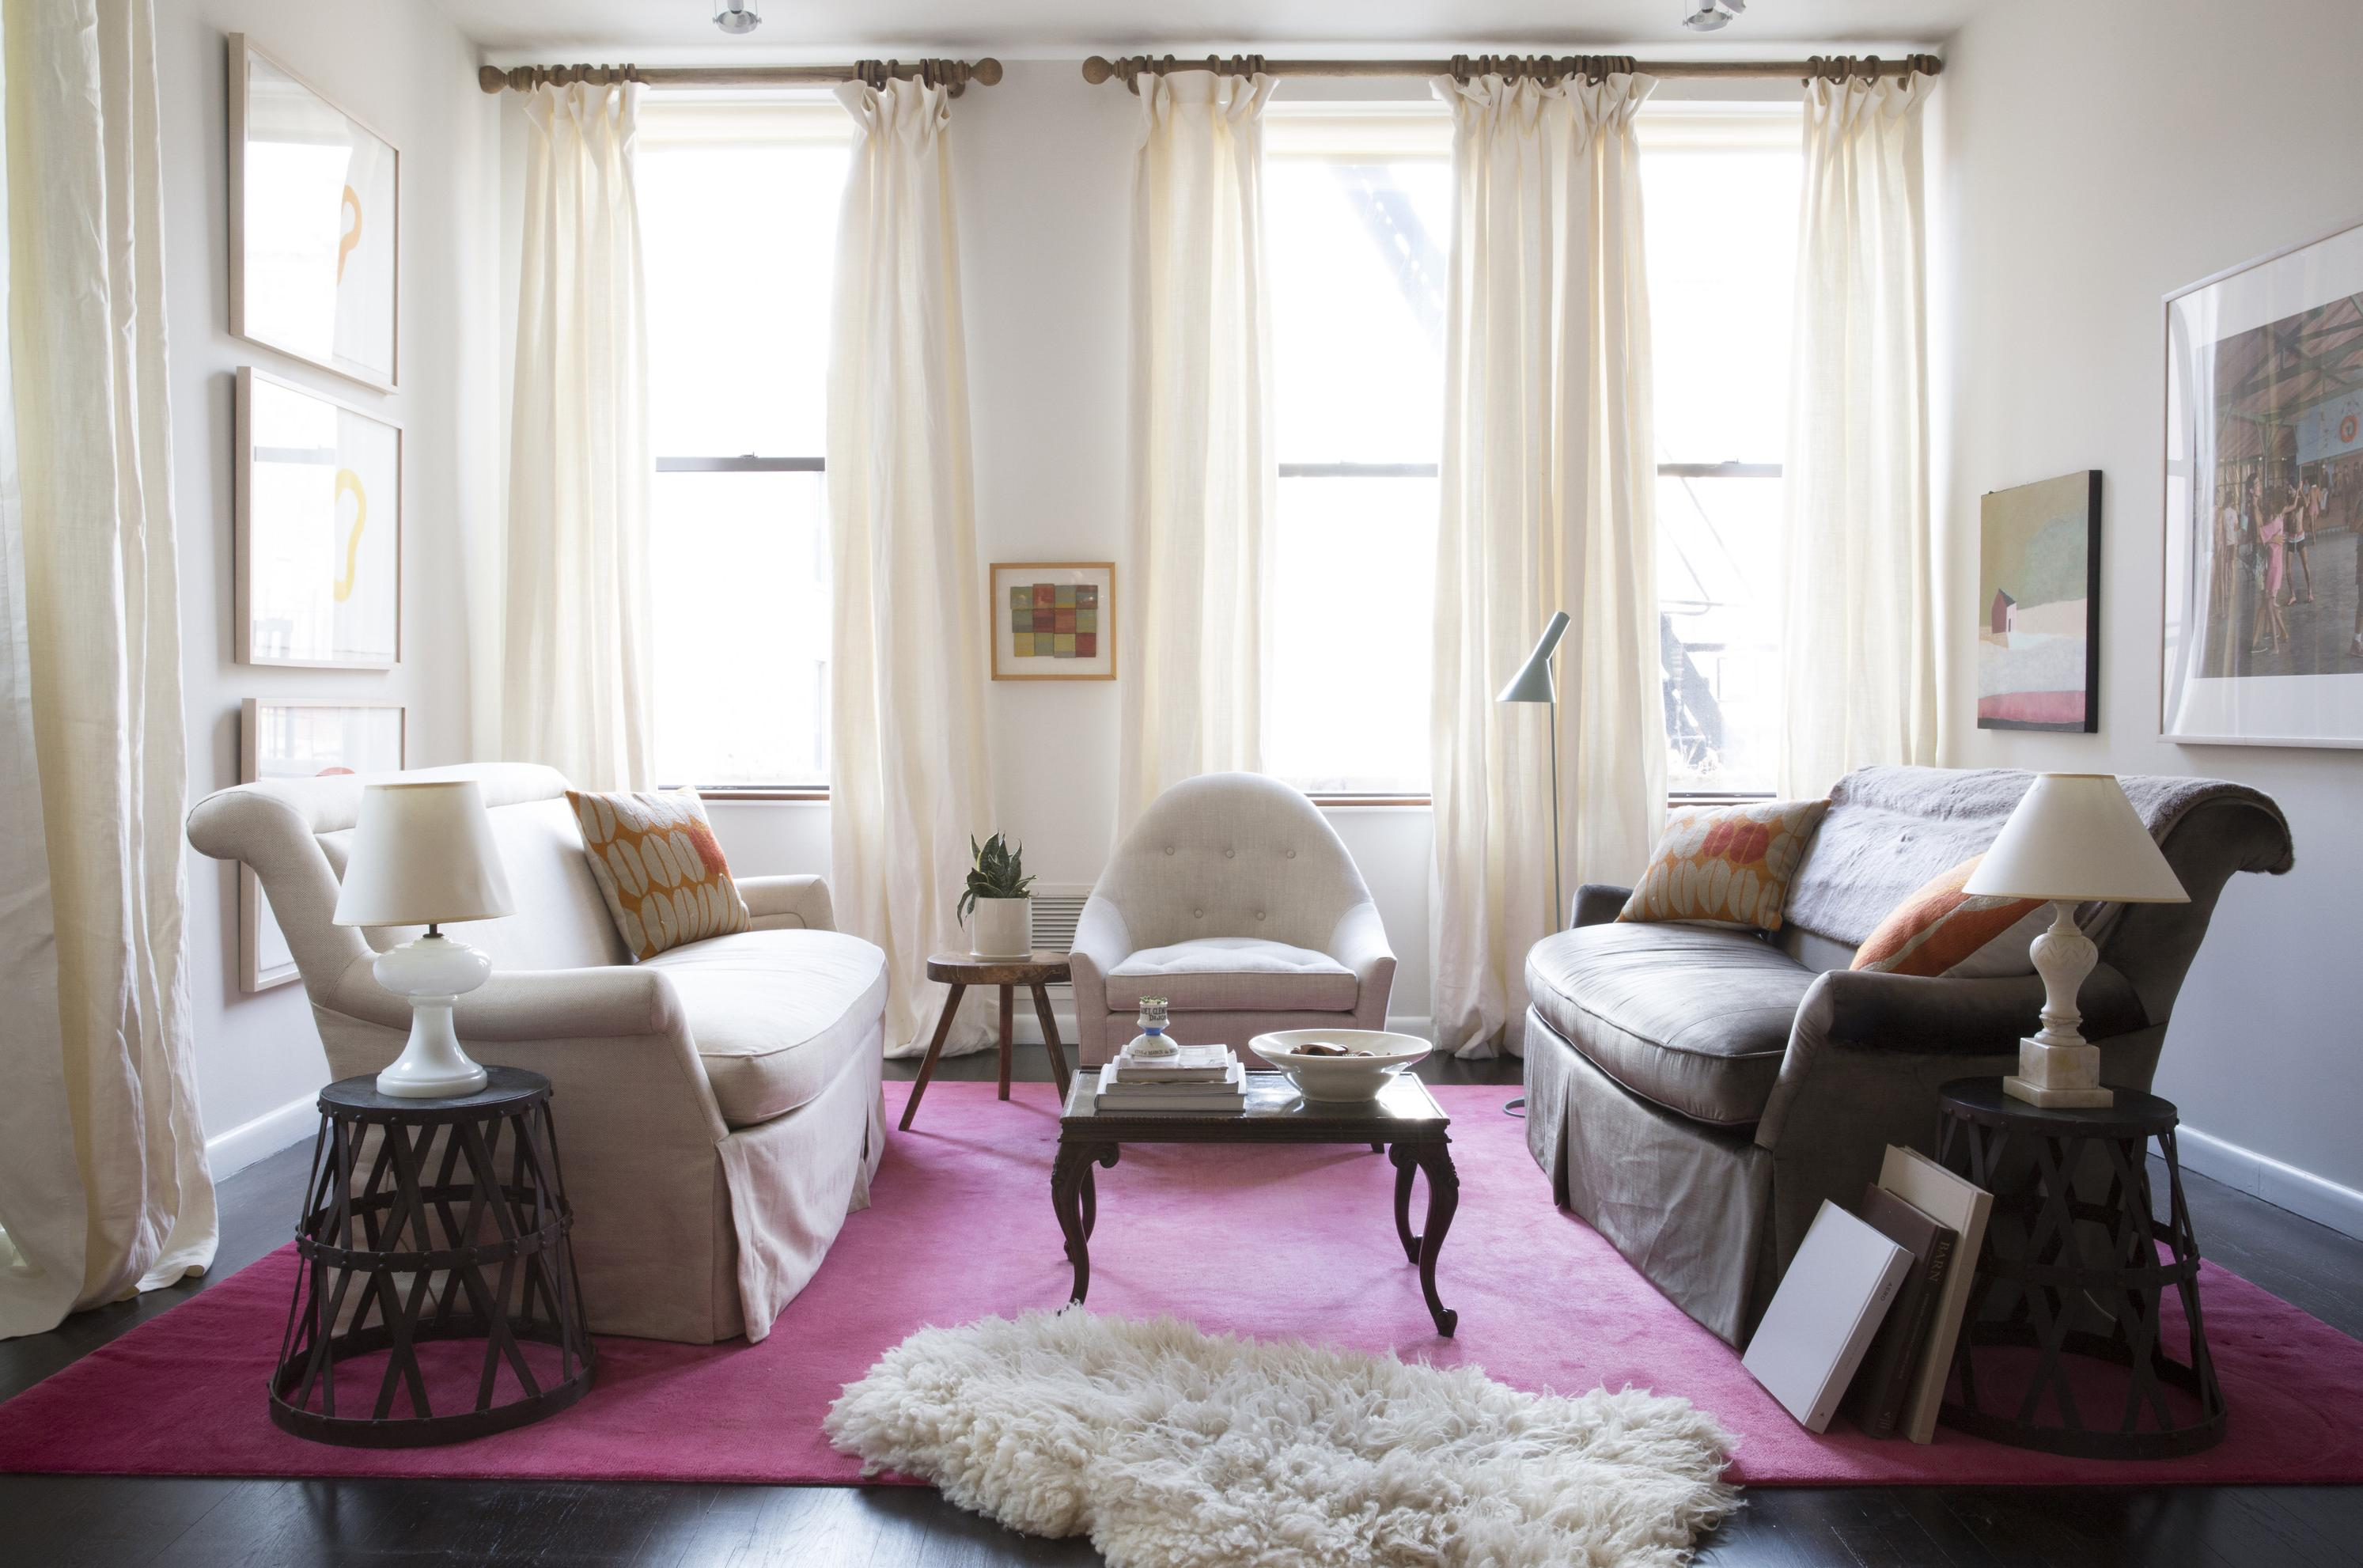 Ask a Designer: Tips on making a room feel bigger | The Spokesman-Review